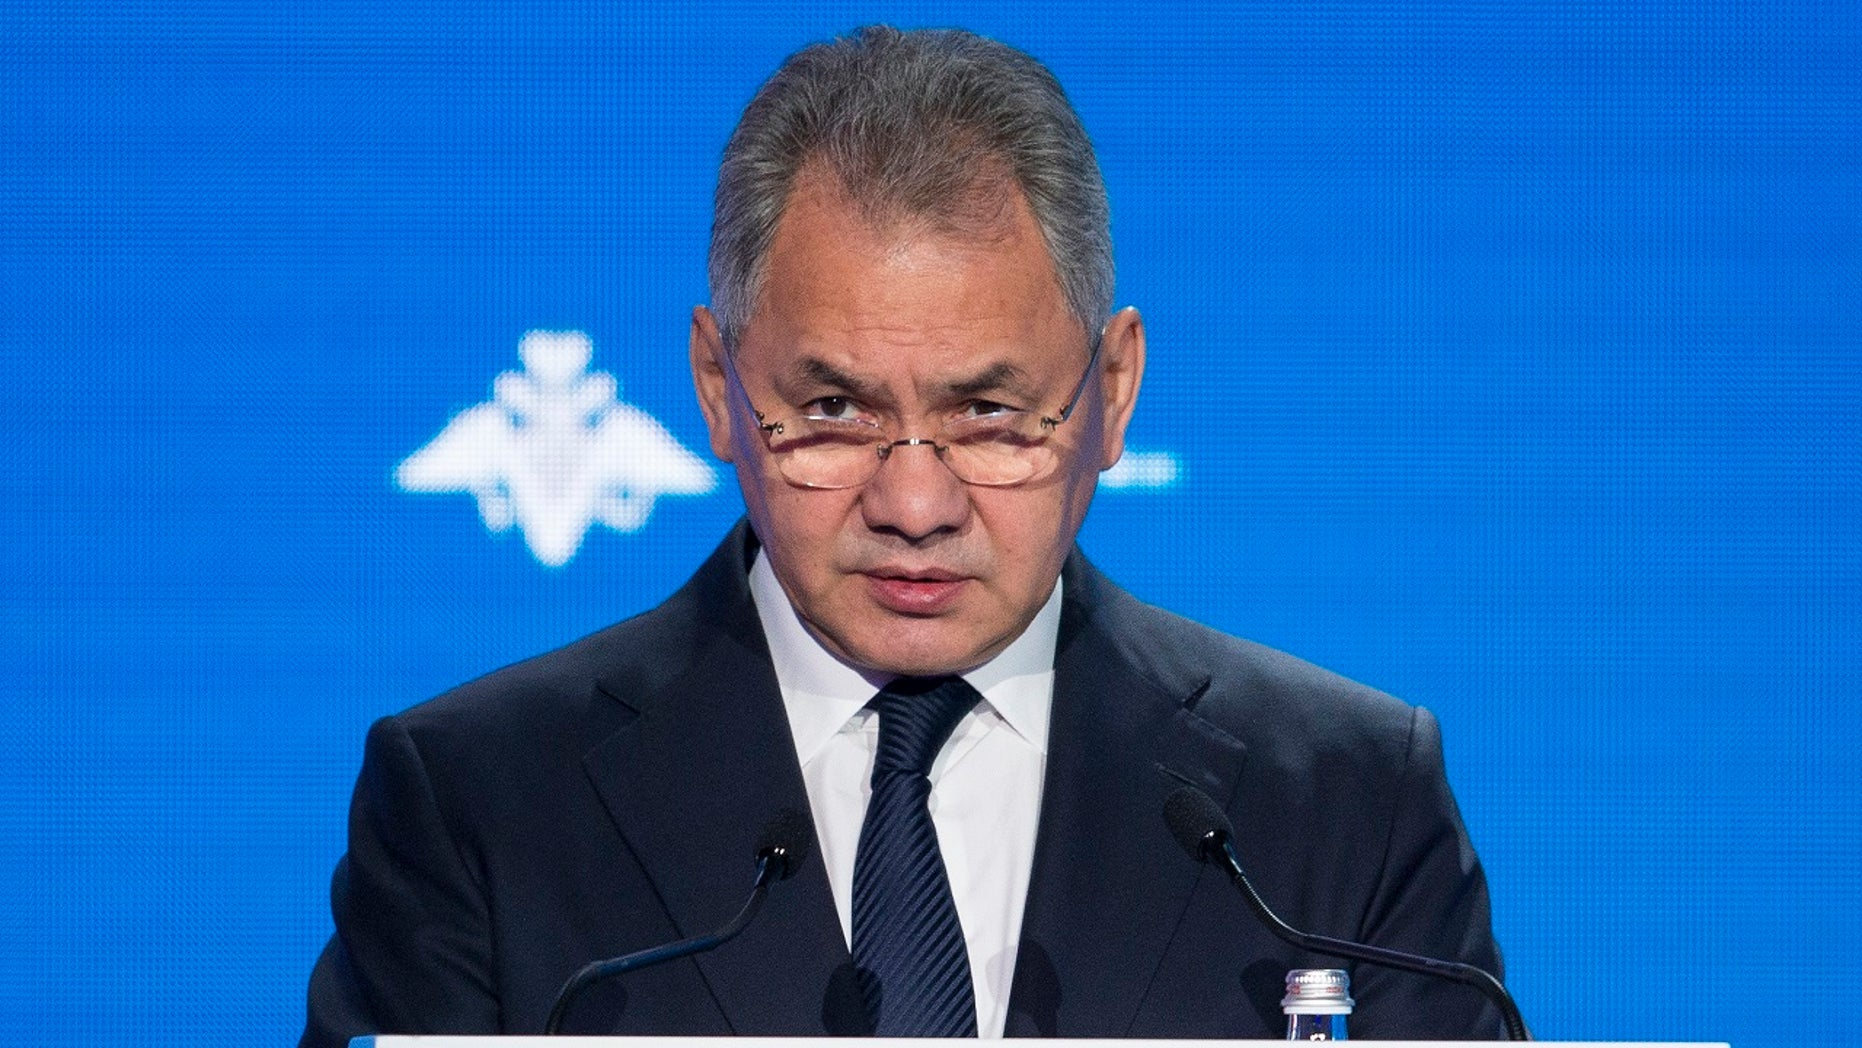 Russian Defense Minister Sergei Shoigu speaks during the Conference on International Security in Moscow, Russia, Wednesday, April 4, 2018.